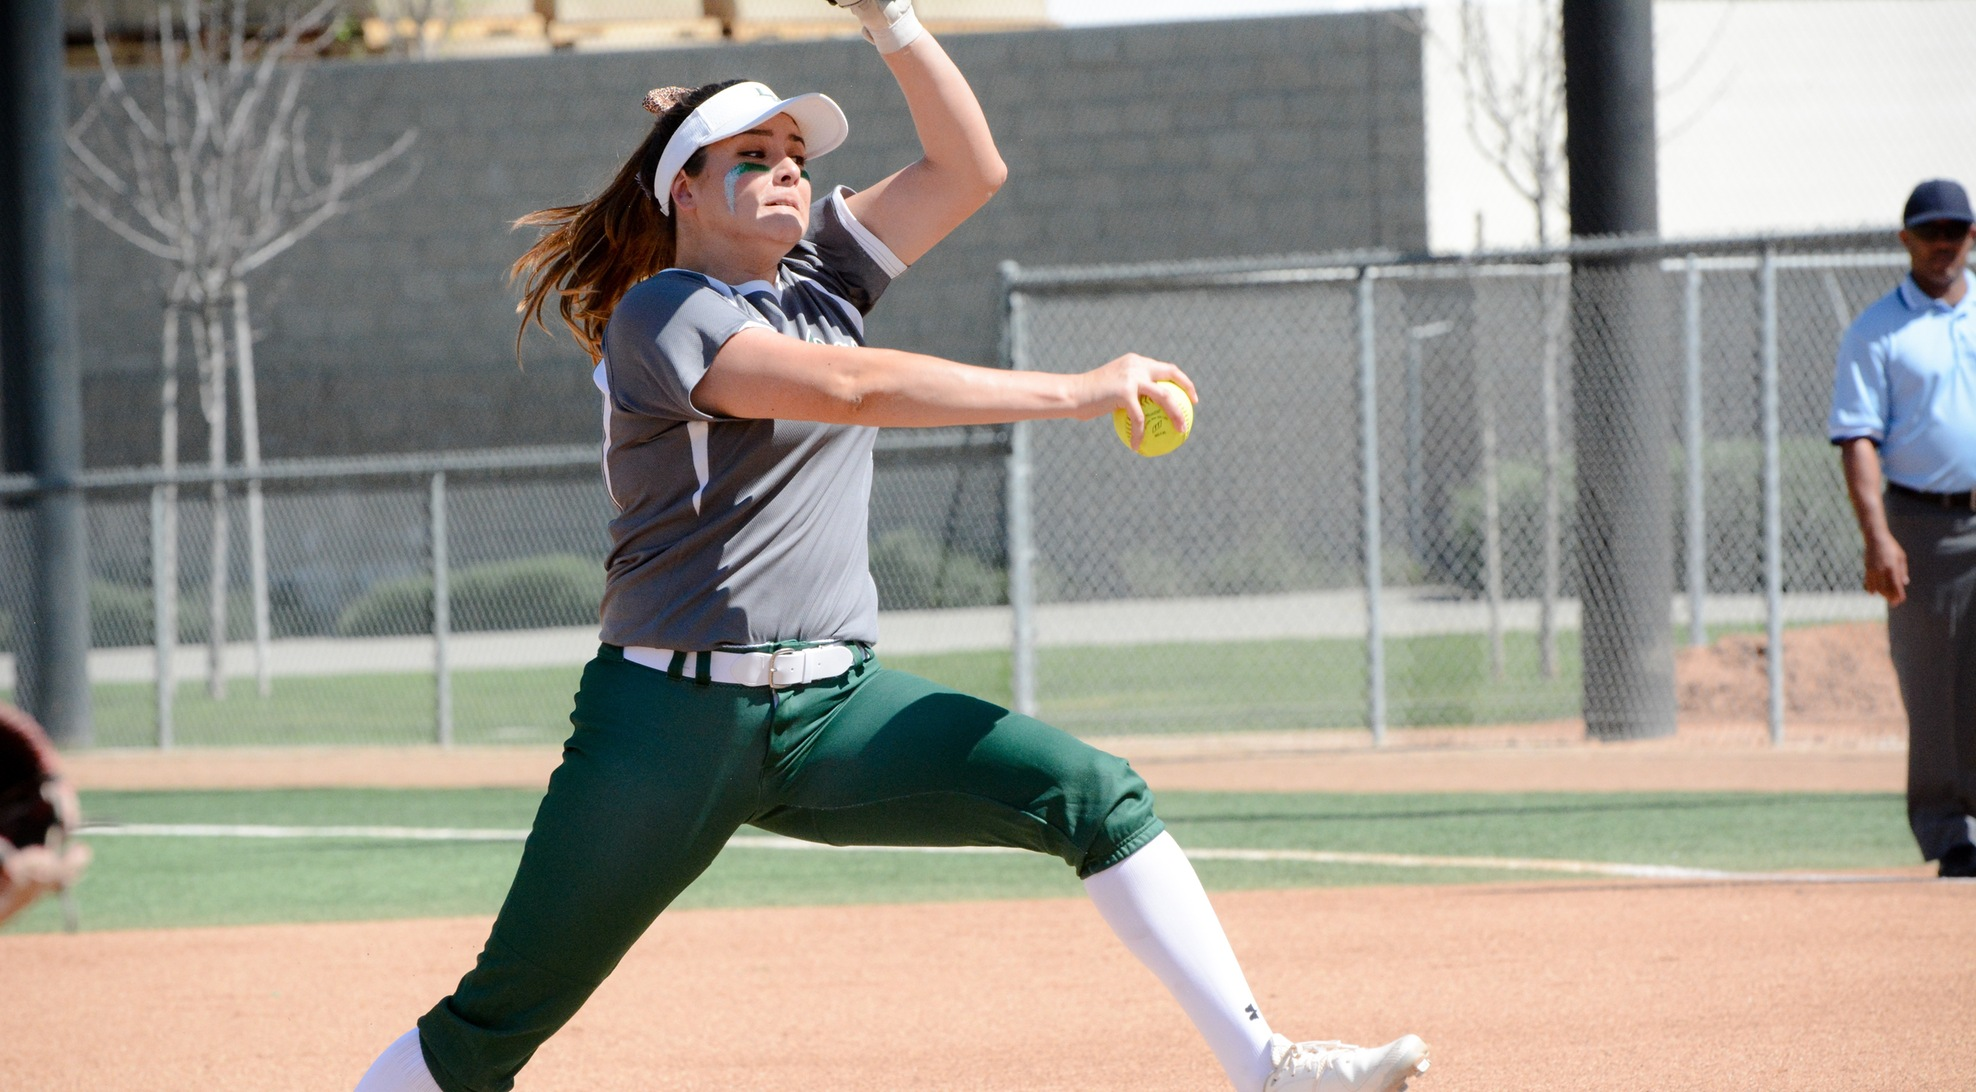 Ponce shuts out No. 25 Ithaca, La Verne earns split